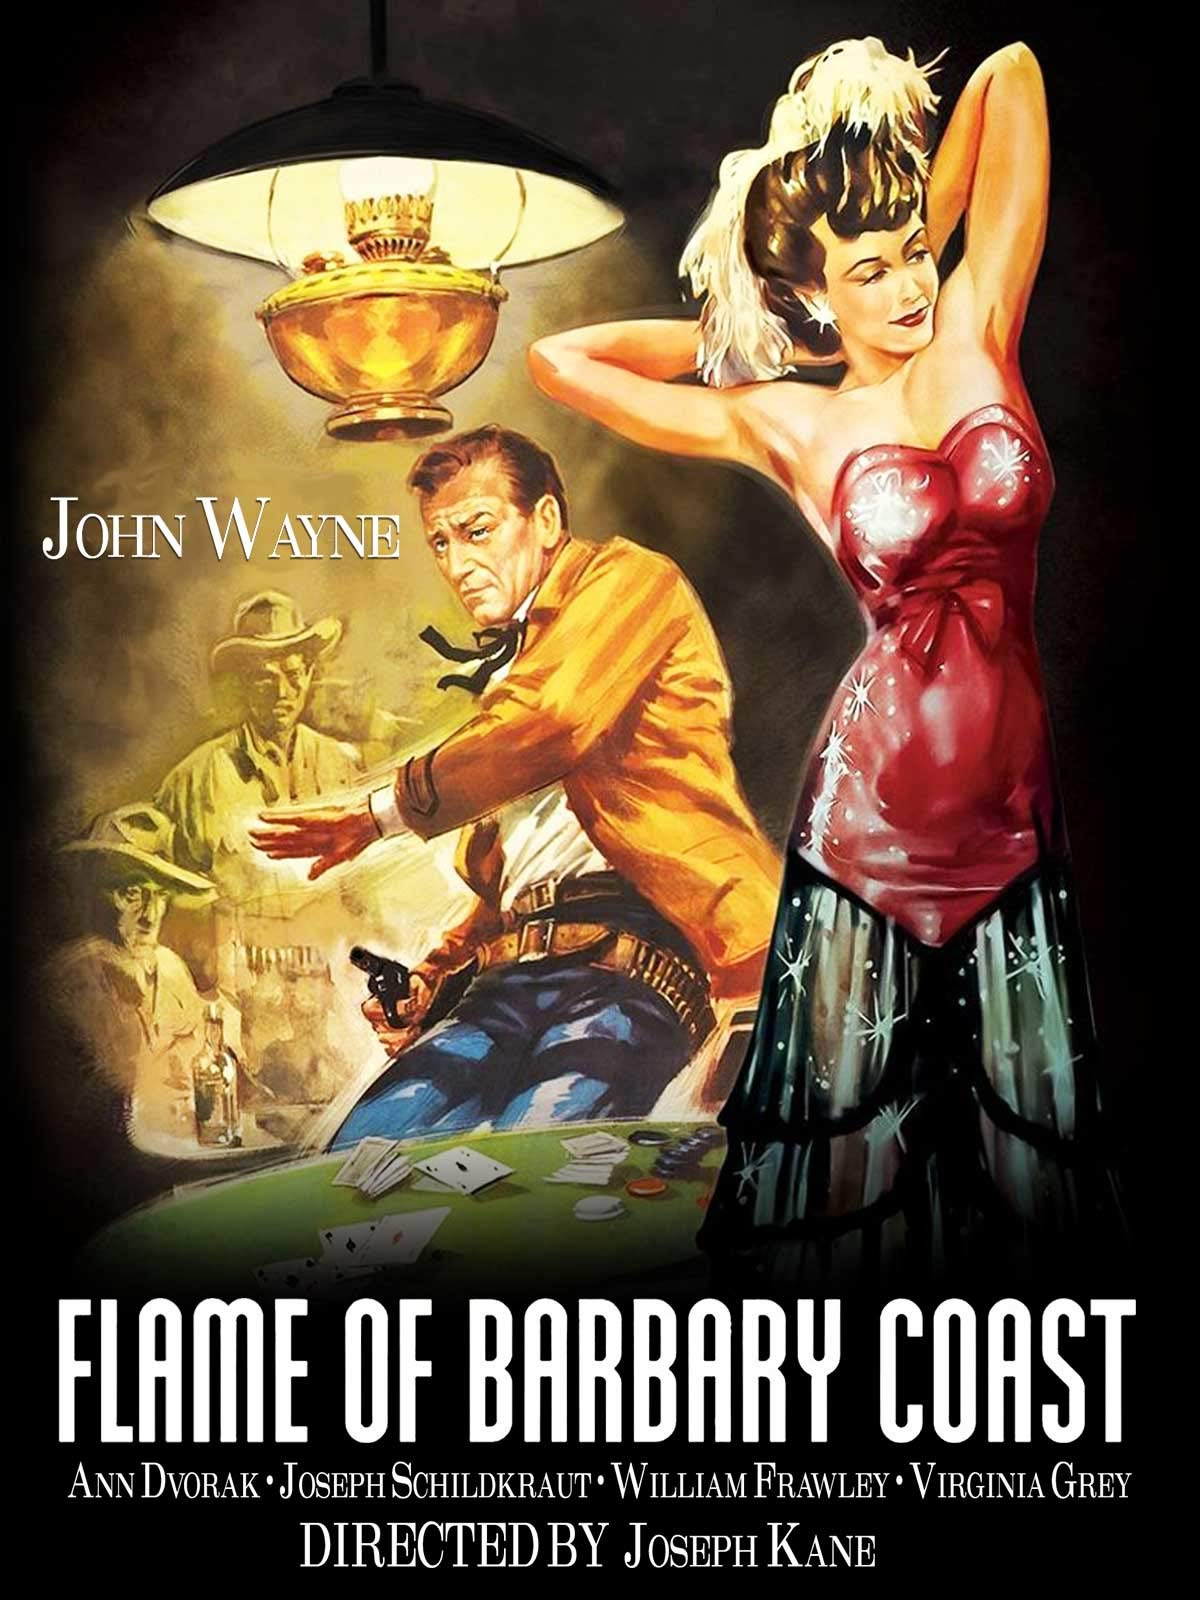 Watch Flame of the Barbary Coast | Prime Video